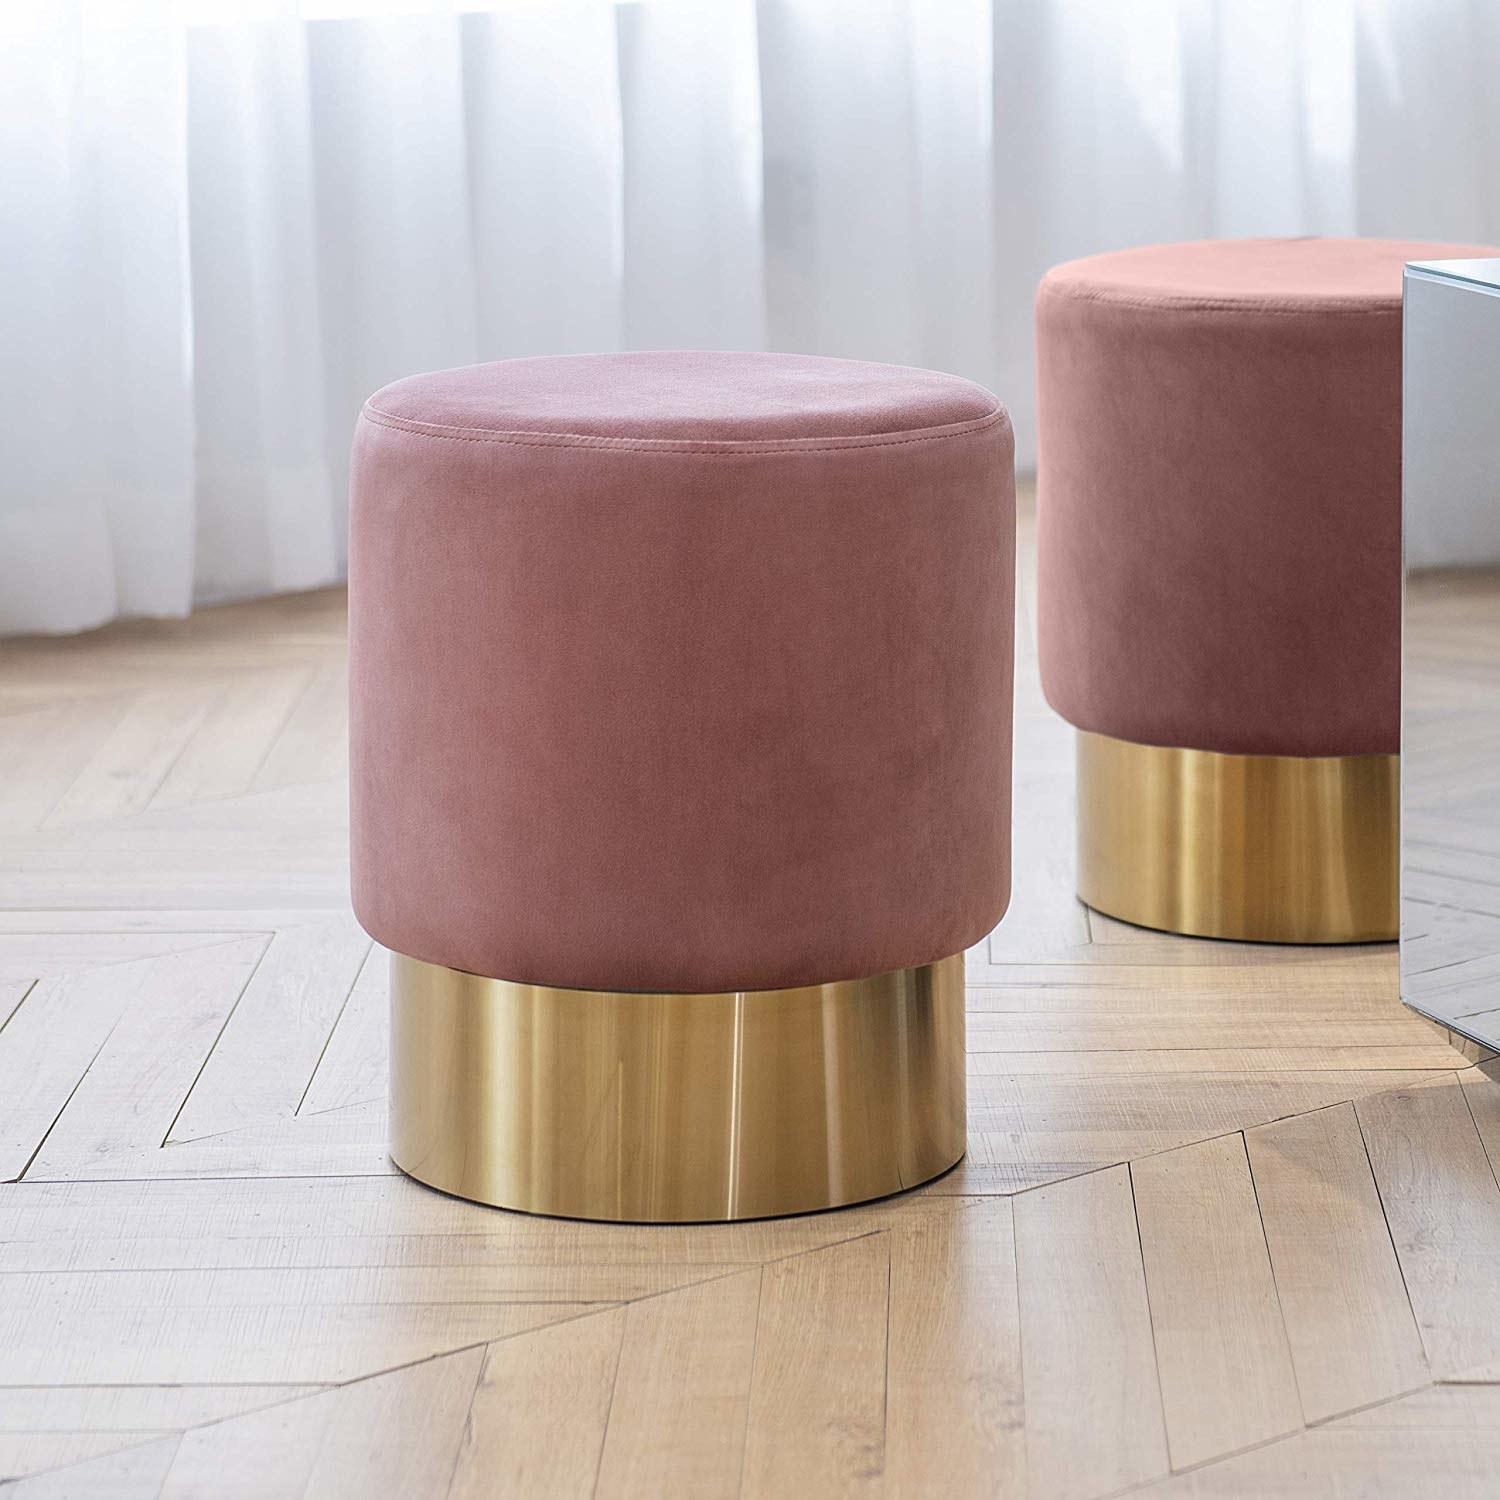 Two circular blush-colored ottomans with gold foot bands